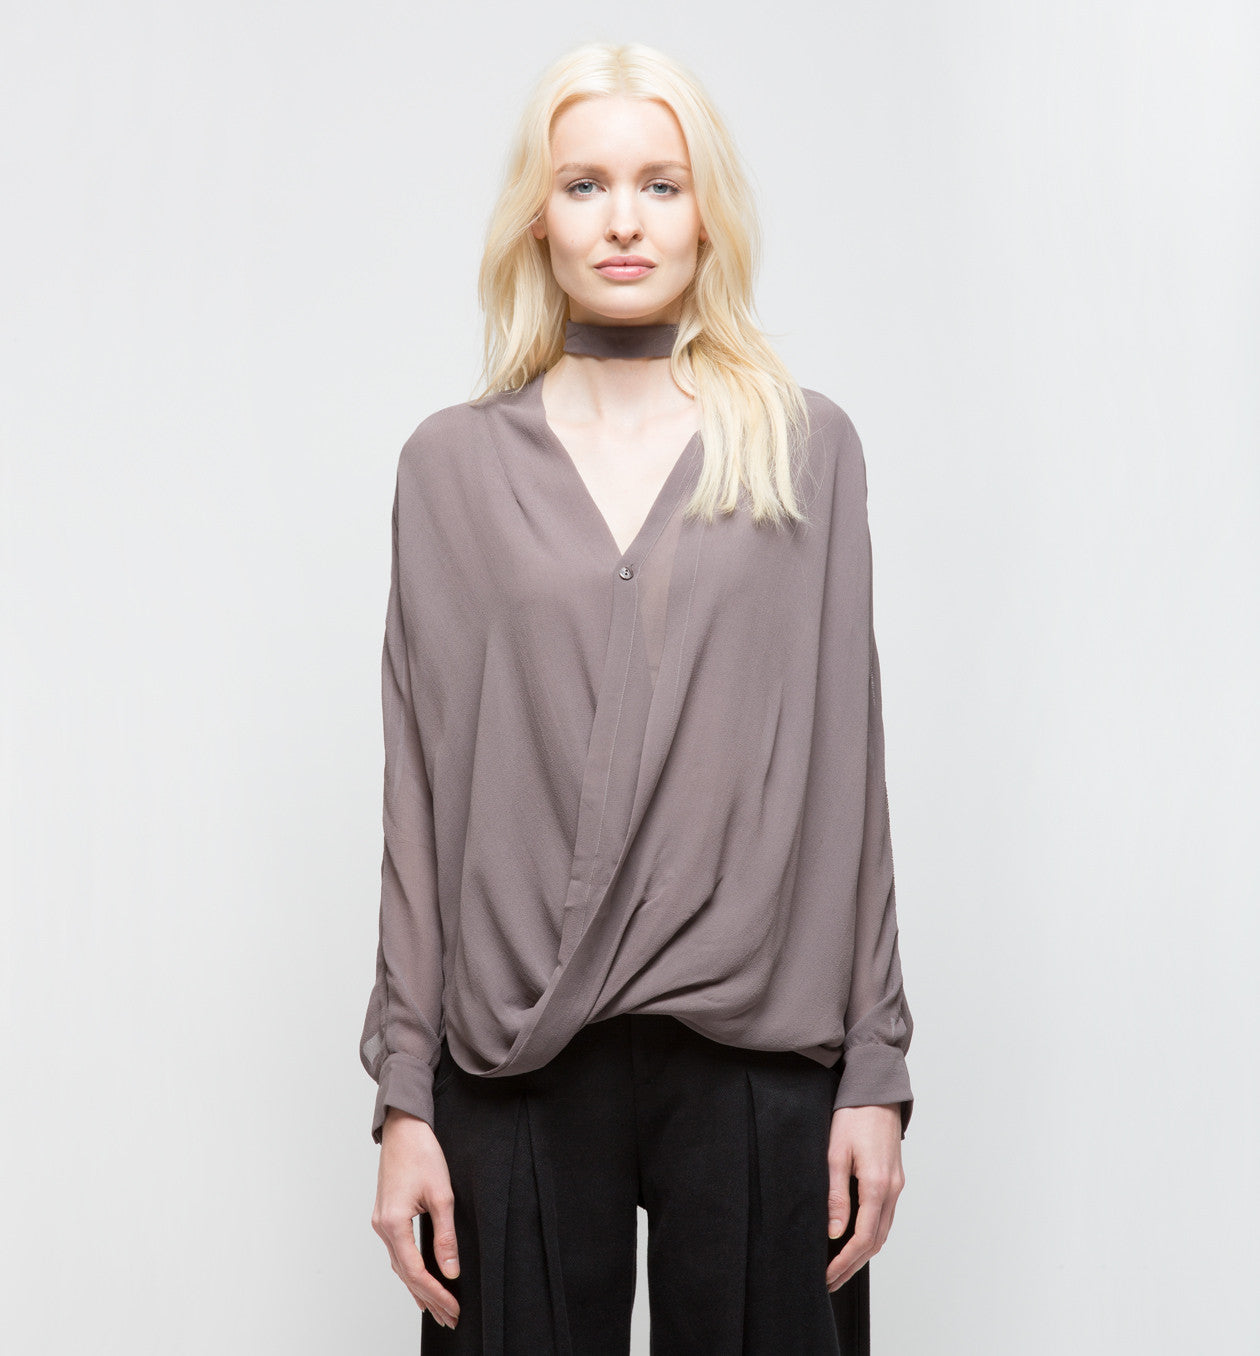 Draped Top with Collar Light Lavender